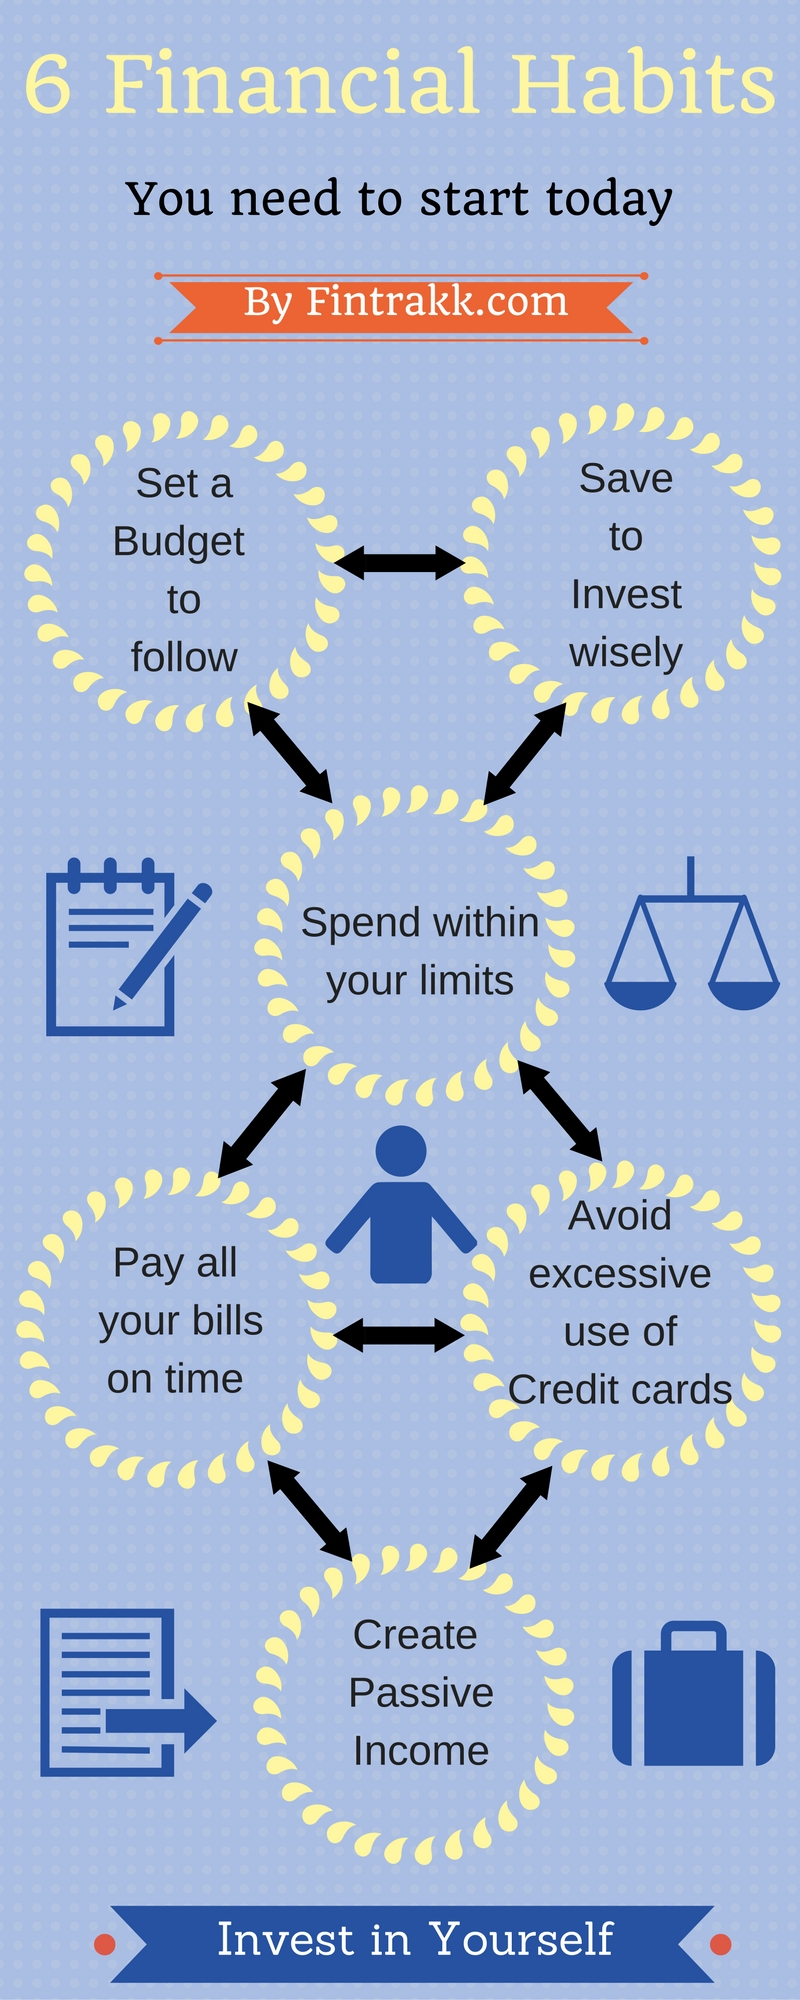 Financial habits Infographic,financial habits to follow,Personal Finance infographic,Saving & Investing infographic